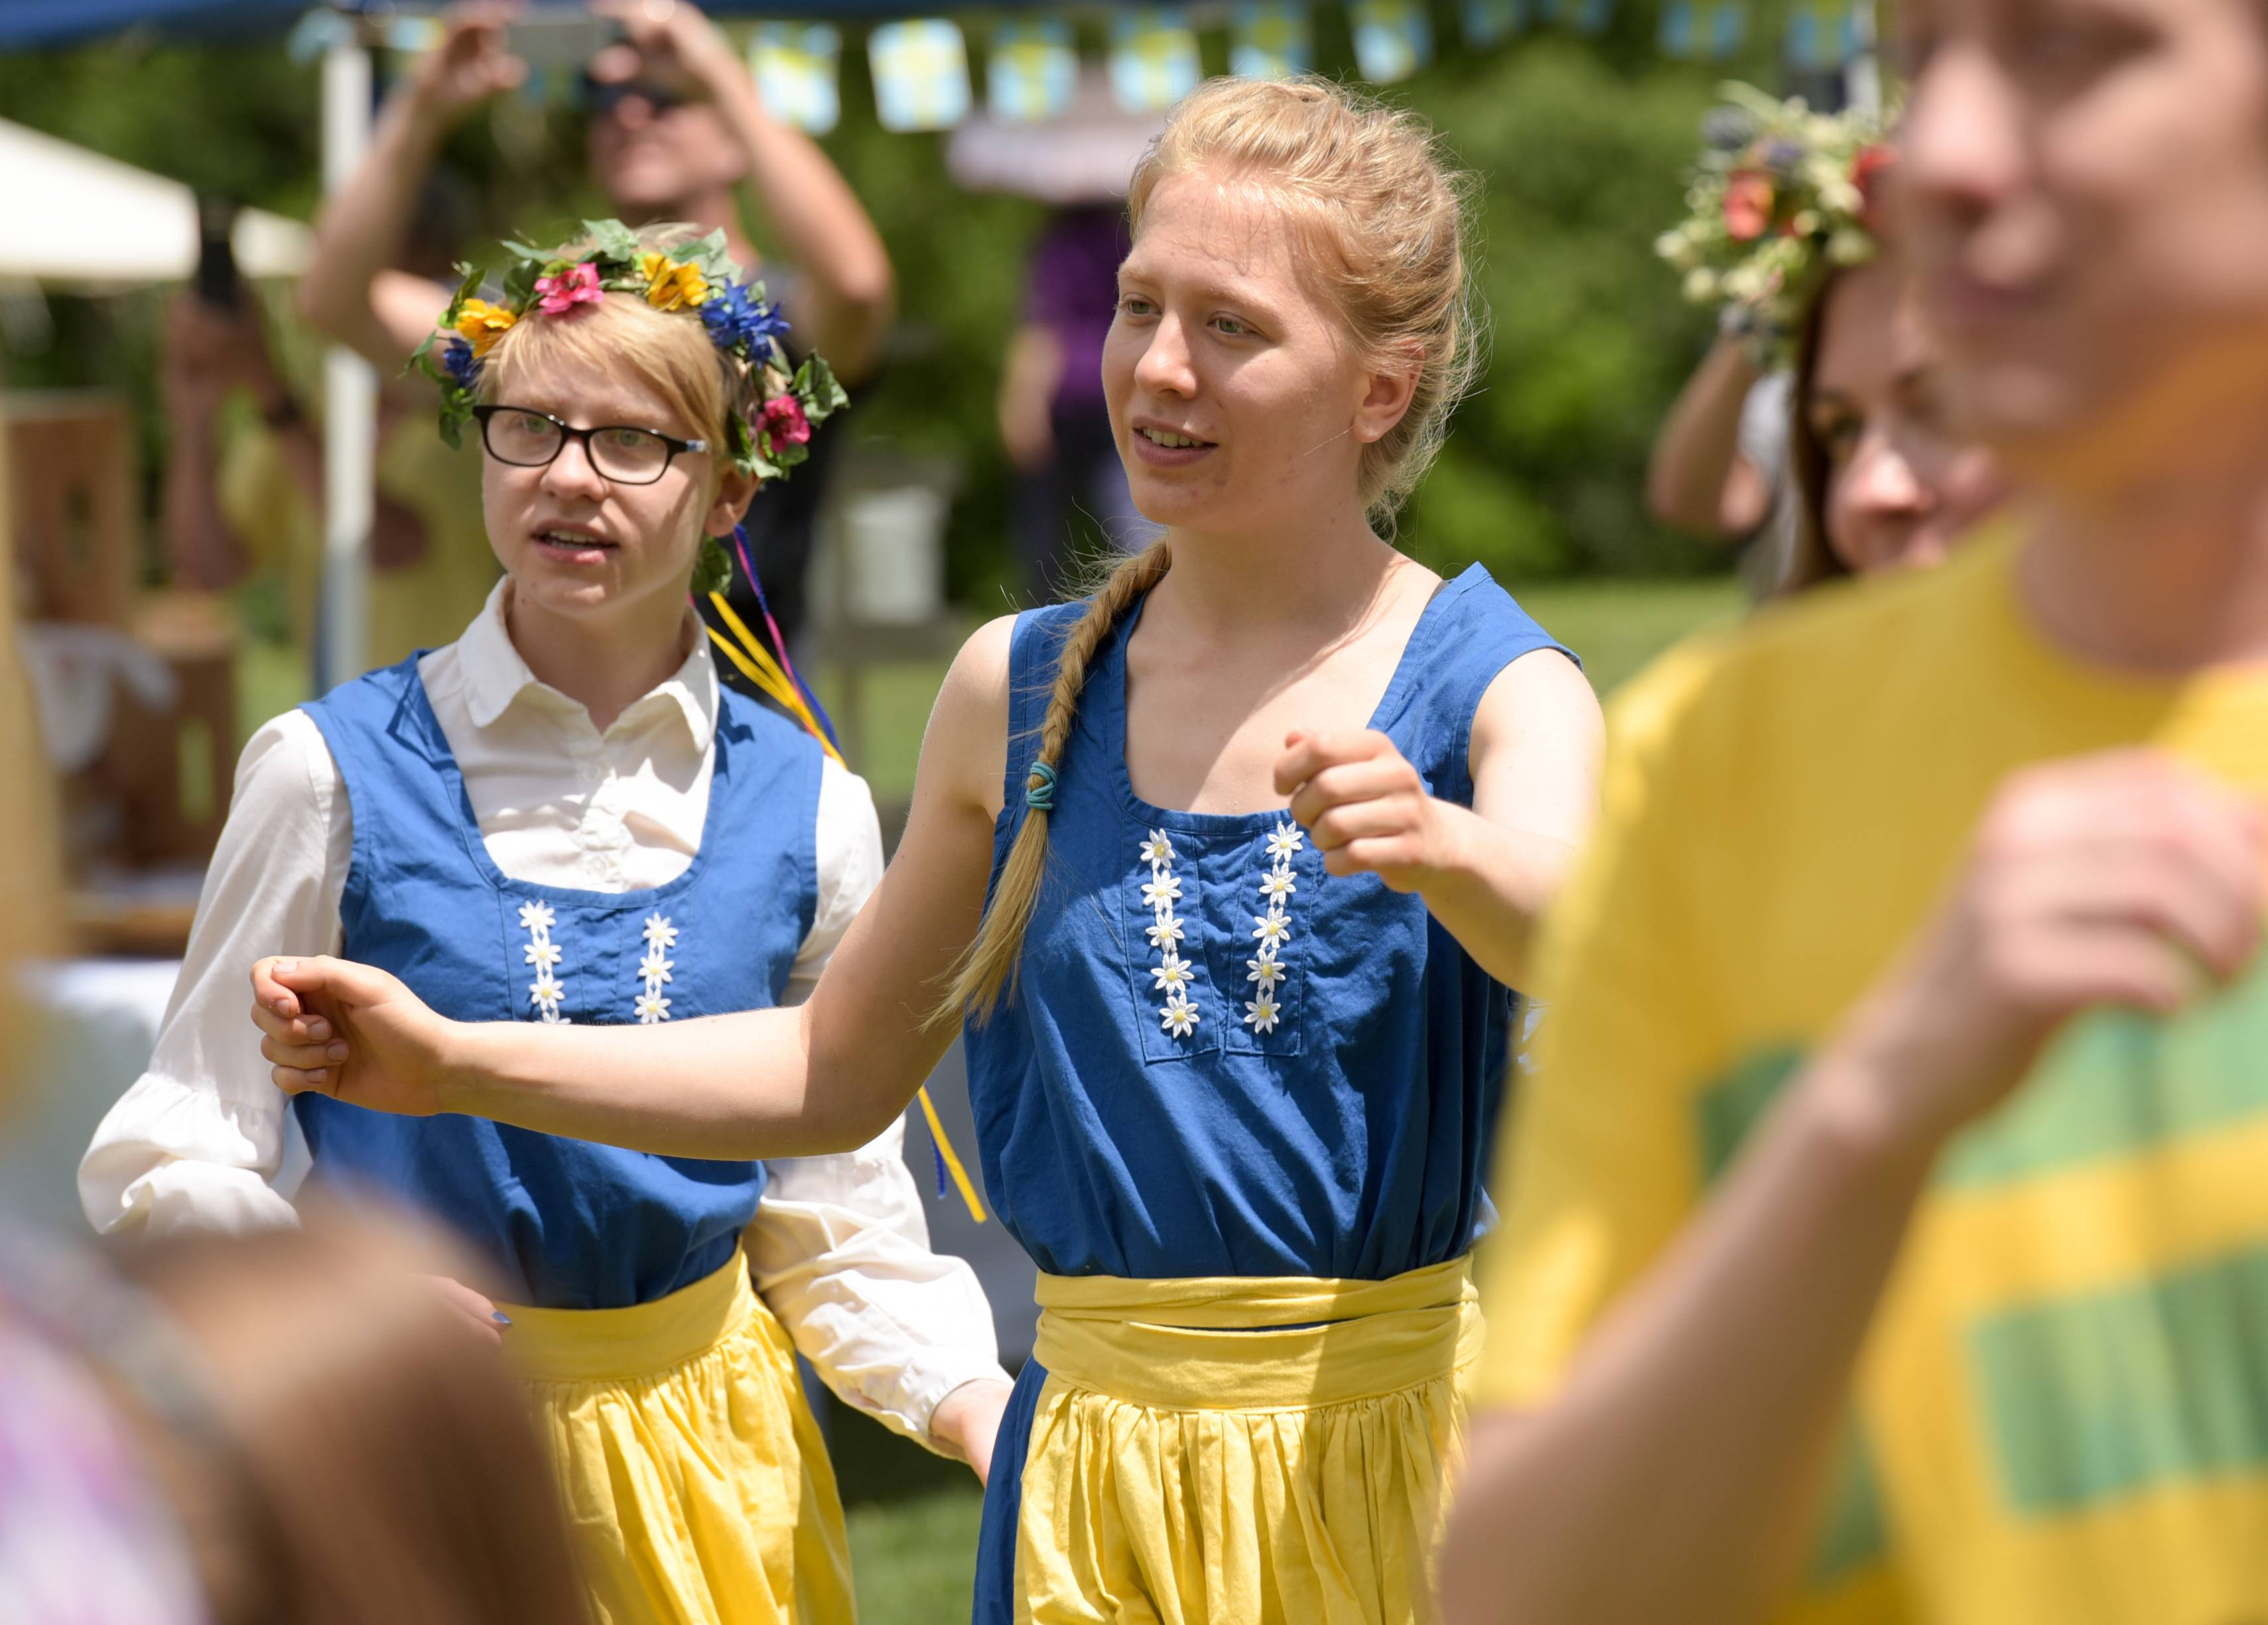 Sisters Kenna and Katya Pospisil of Lake Geneva, Wisconsin, dance around the Maypole Sunday during the annual Swedish Day Midsummer Festival at Good Templar Park in Geneva.